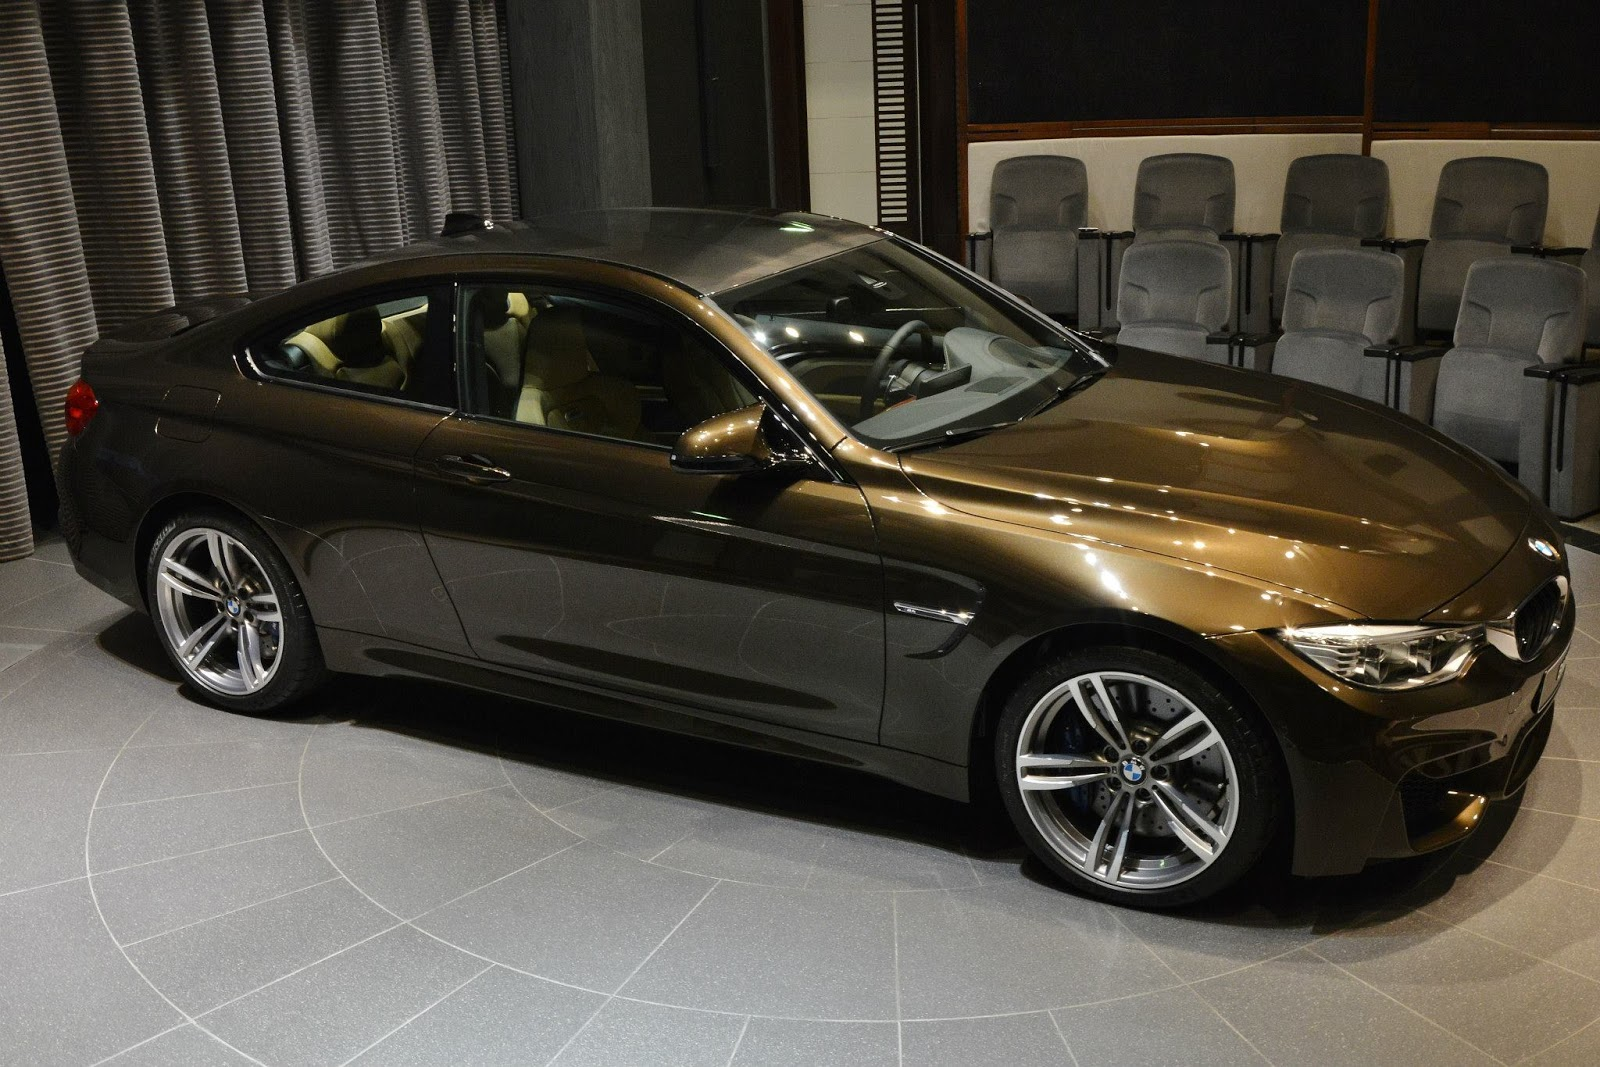 Pikes Peak Coffee >> BMW M4 Individual In Pyrite Brown: Sweet As Chocolate Or Bitter As Coffee? | Carscoops